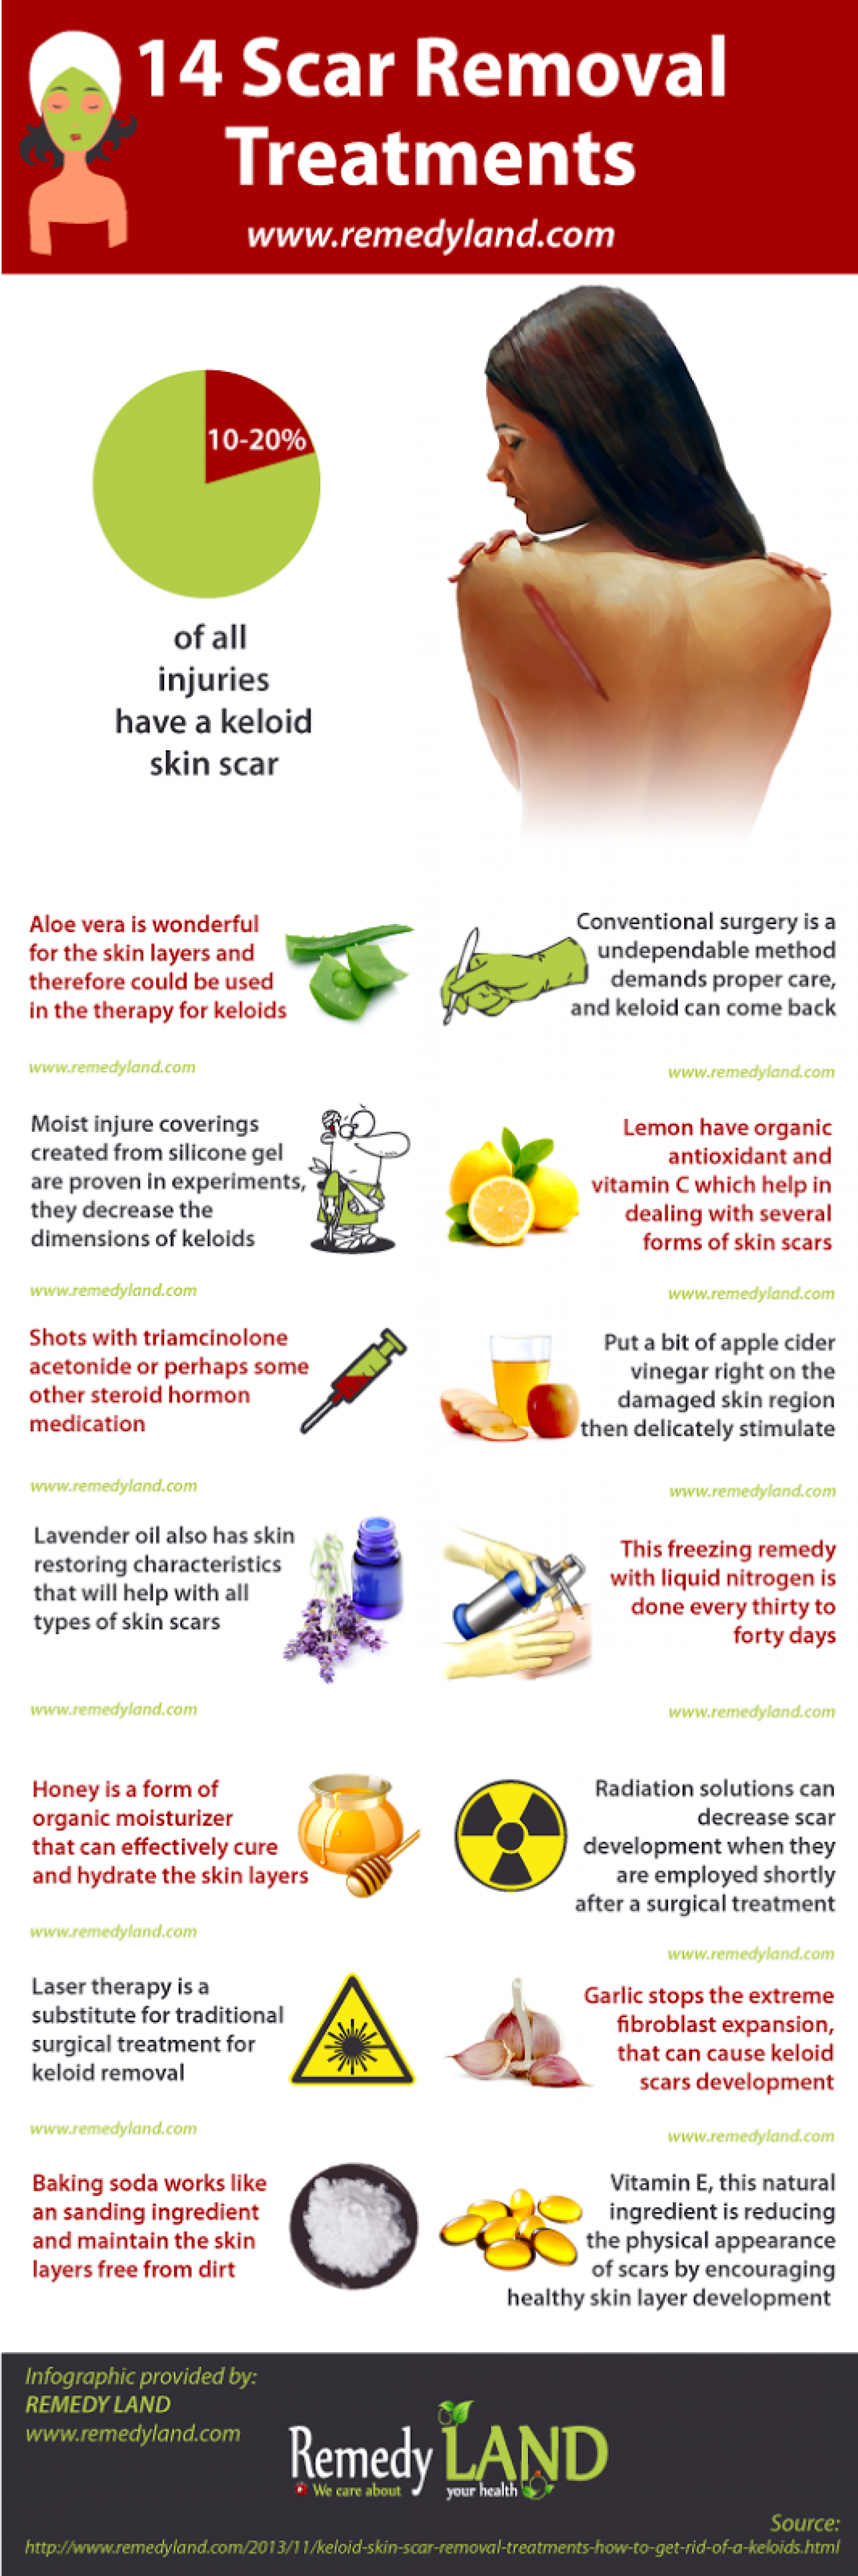 14 keloid skin scar removal treatments Infographic